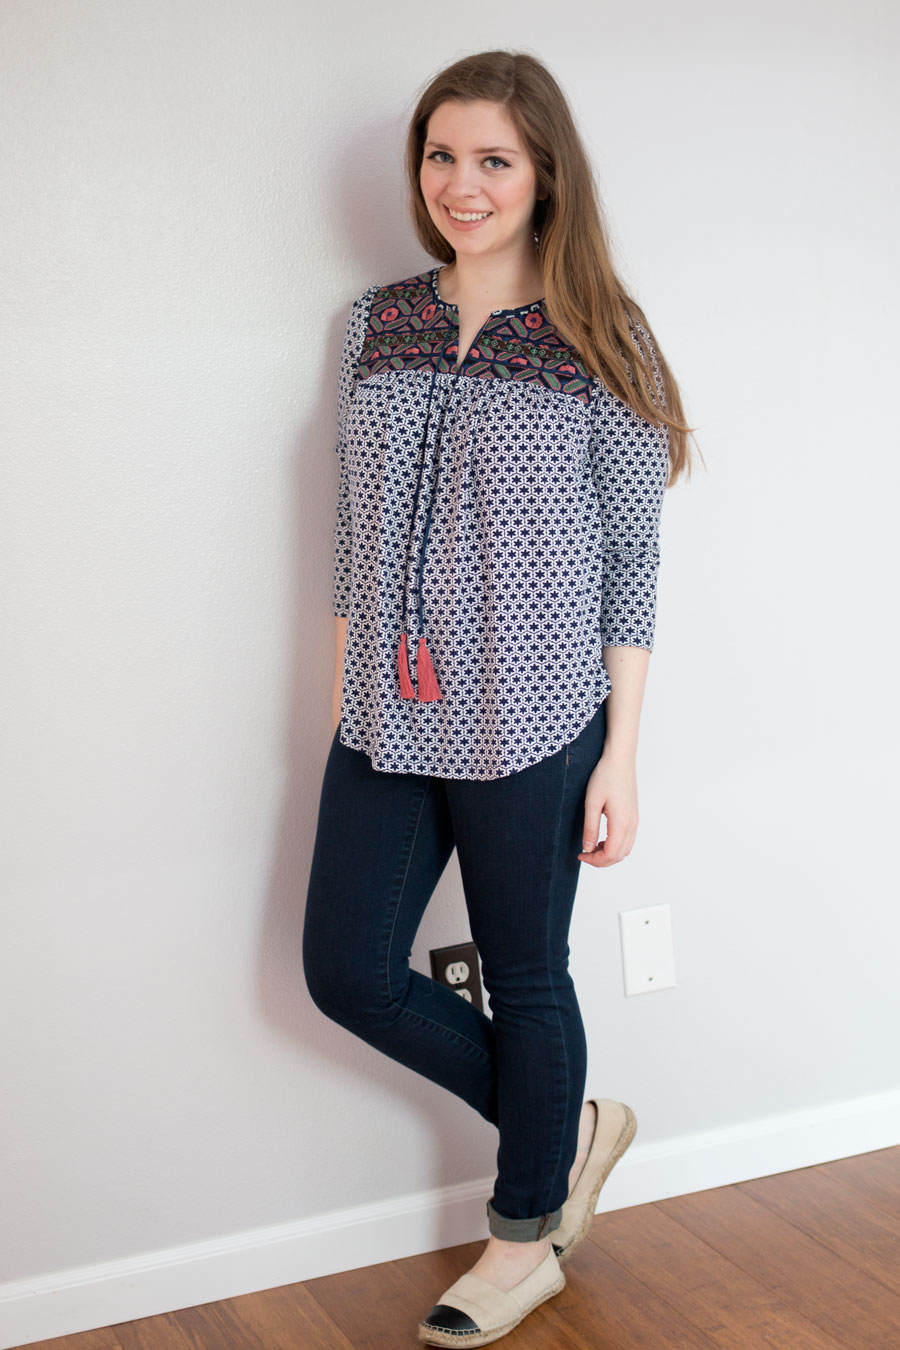 Stitch Fix June 2015 Review: Ezra Cuballa Embroidery Knit Top / hellorigby seattle fashion blog